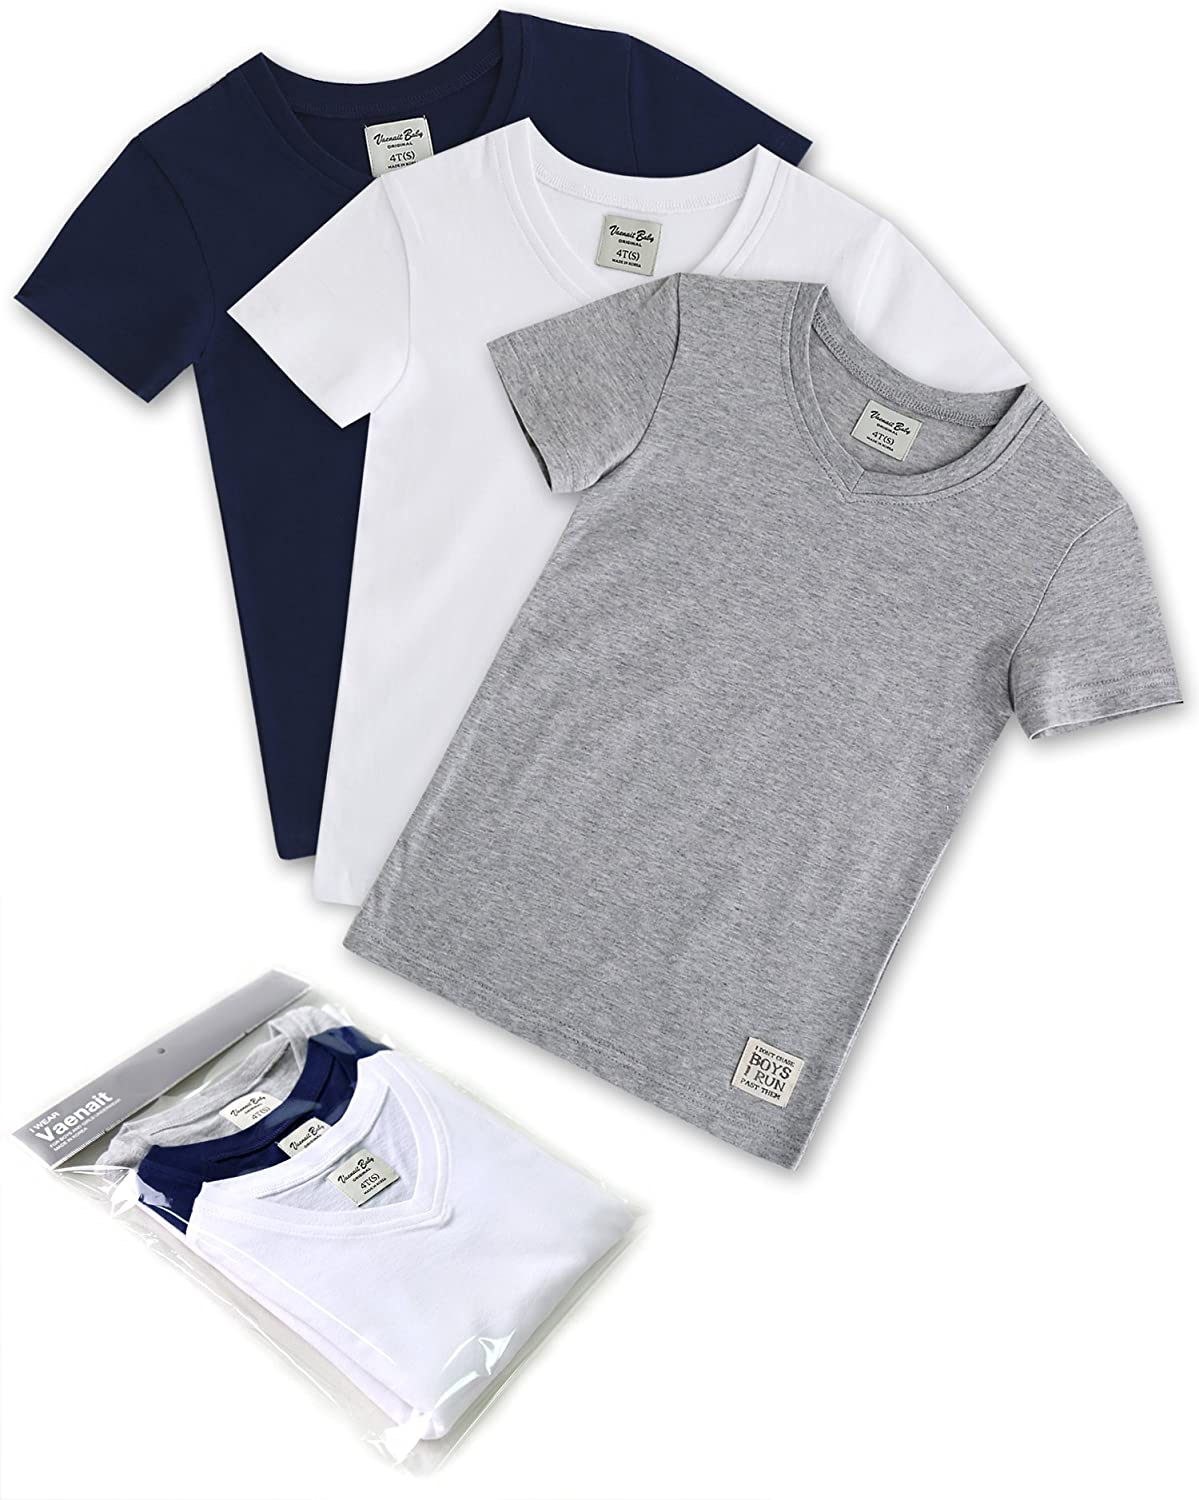 Vaenait baby 3 Pack 2T-7T Boys Shortsleeve V Neck Top T-Shirts Short British